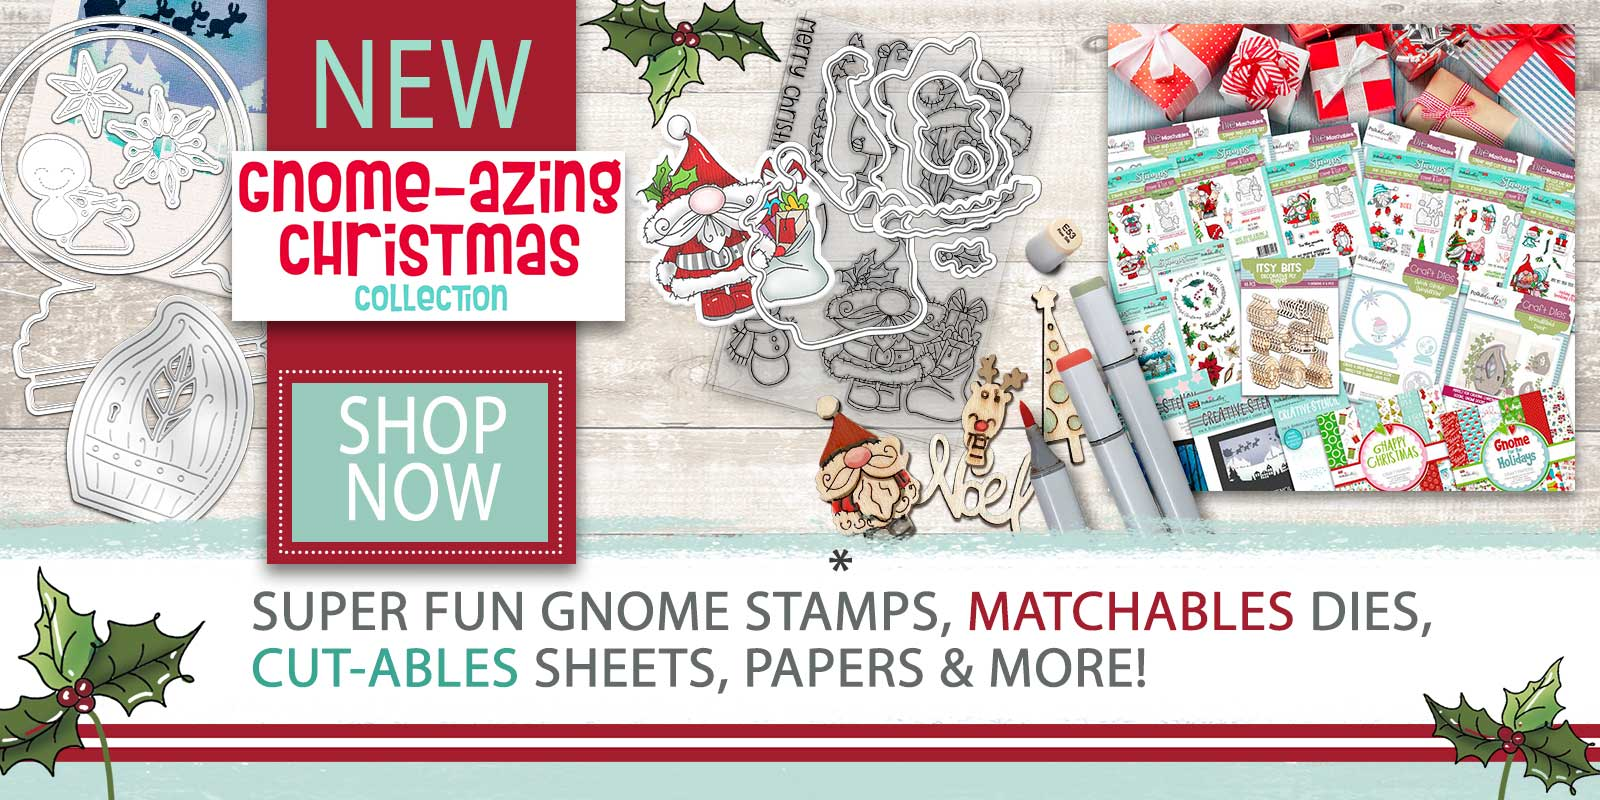 GNOME-AZING CHRISTMAS GNOME STAMPS DIES PAPER CRAFTING COLLECTION